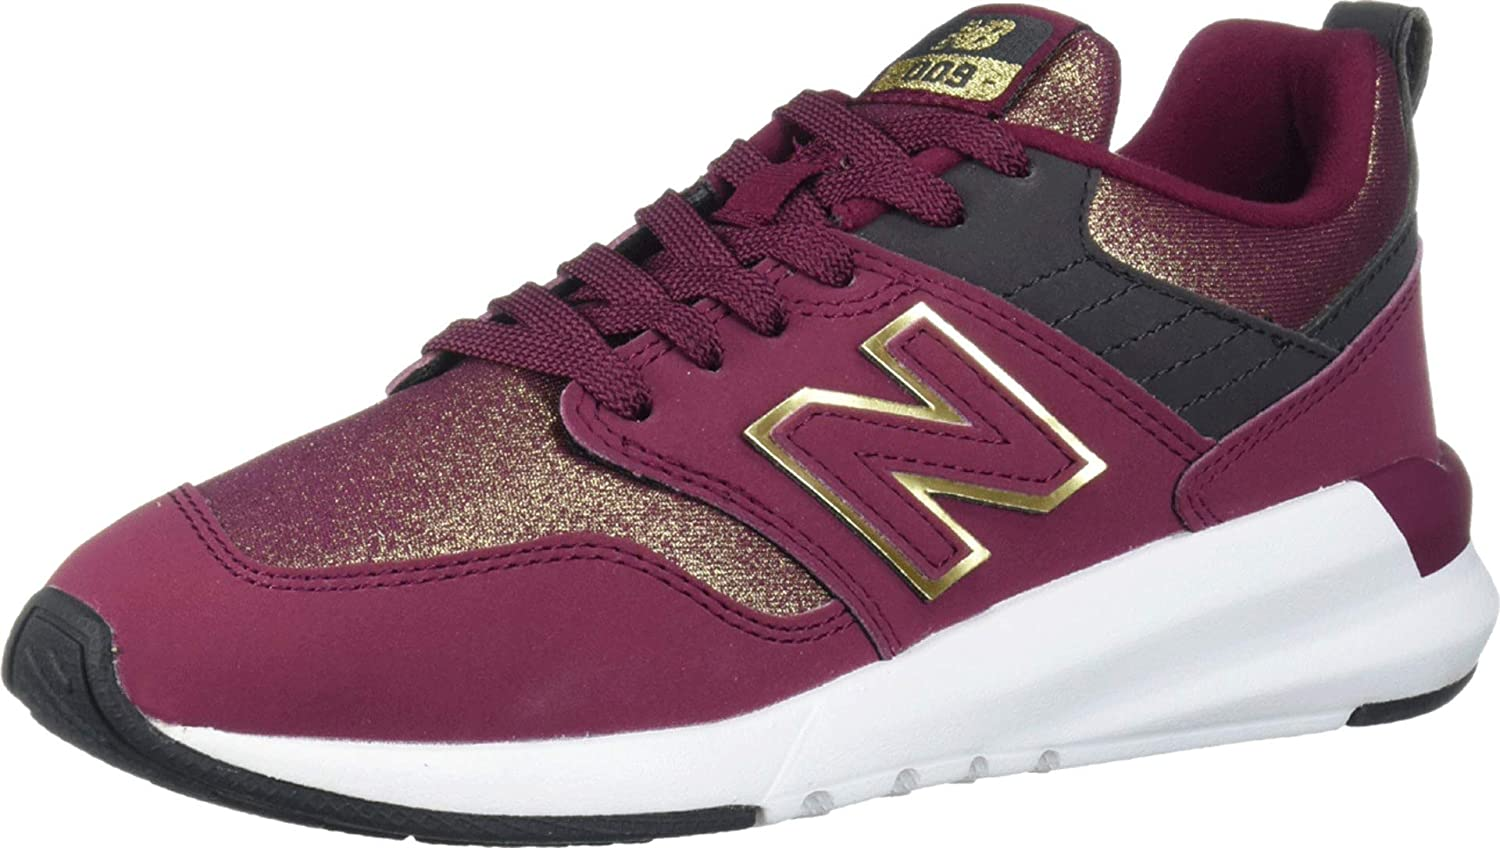 New Lowest price challenge Cheap super special price Balance Women's Sneaker V1 009